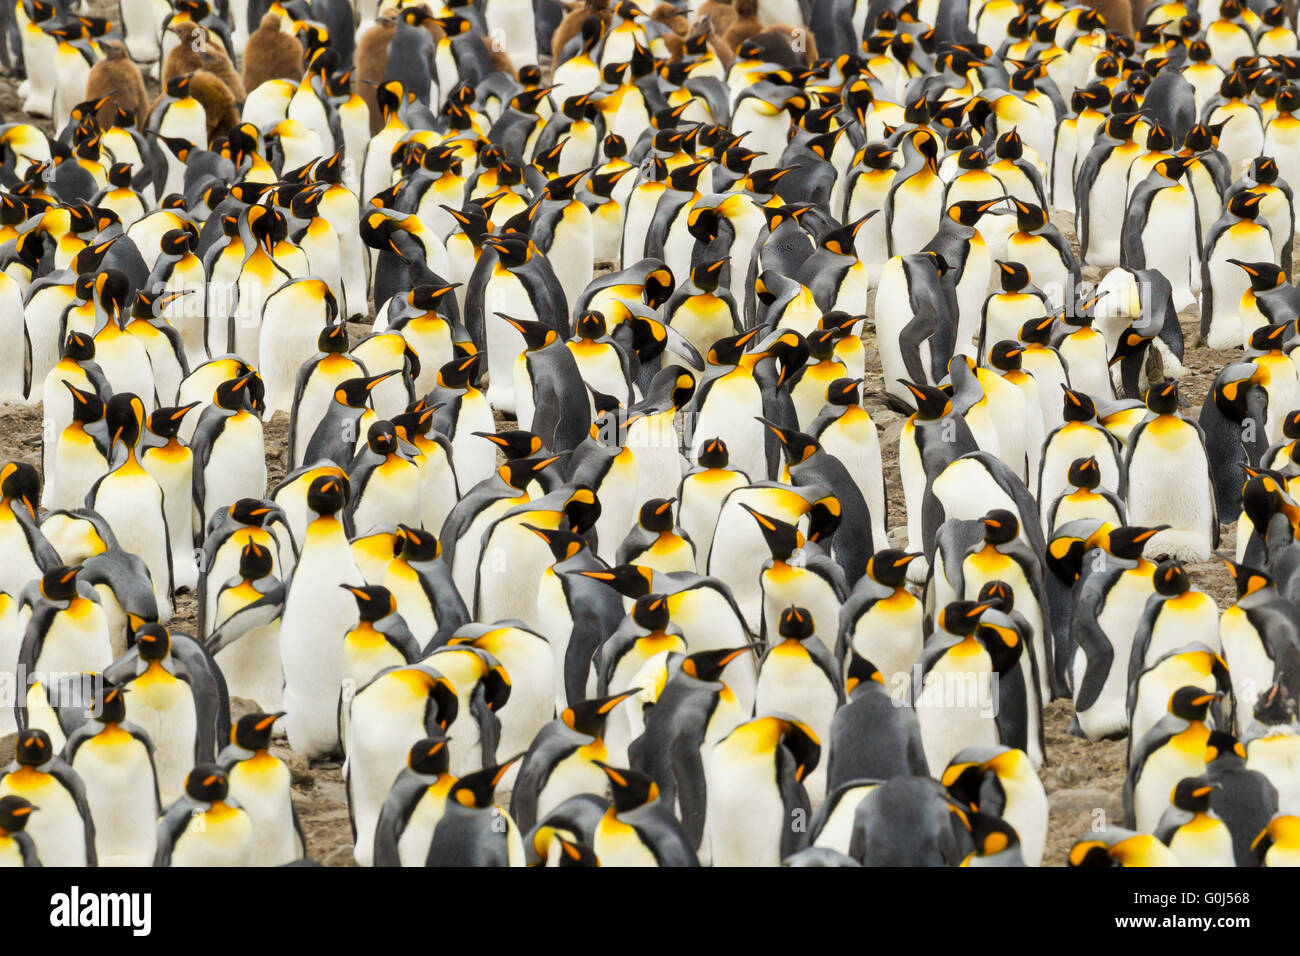 King penguin Aptenodytes patagonicus, tightly packed breeding colony, St. Andrew's Bay, South Georgia in January. - Stock Image